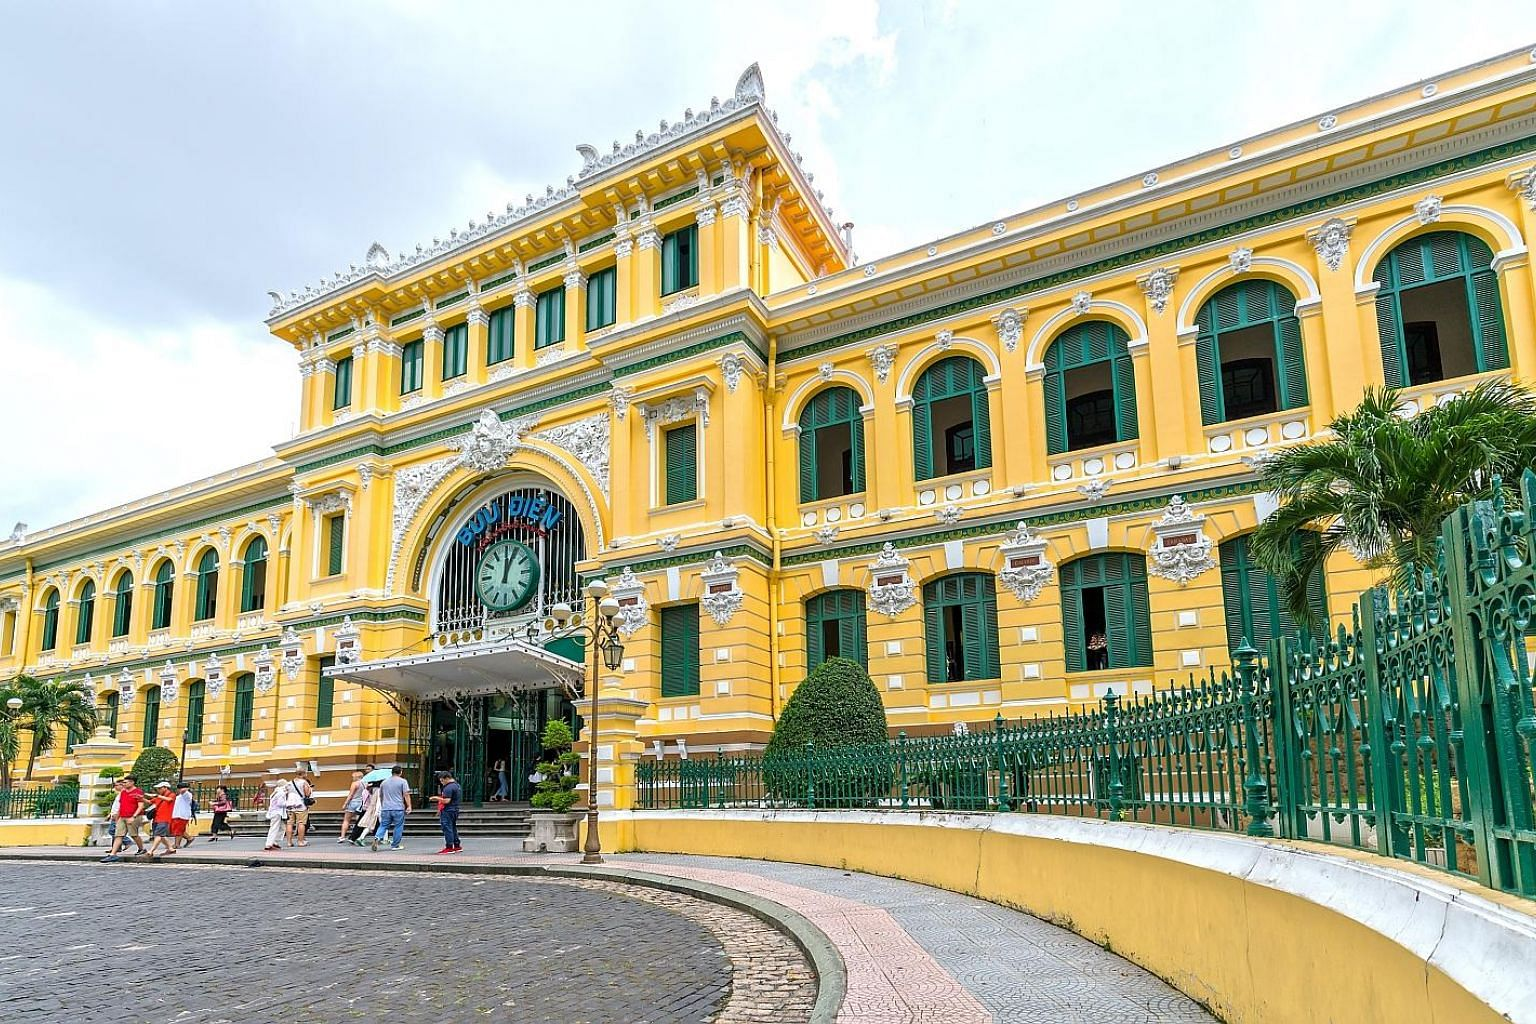 The Saigon Central Post Office is beautifully preserved and a lovely blend of Western architectural styles with Asian decorations.